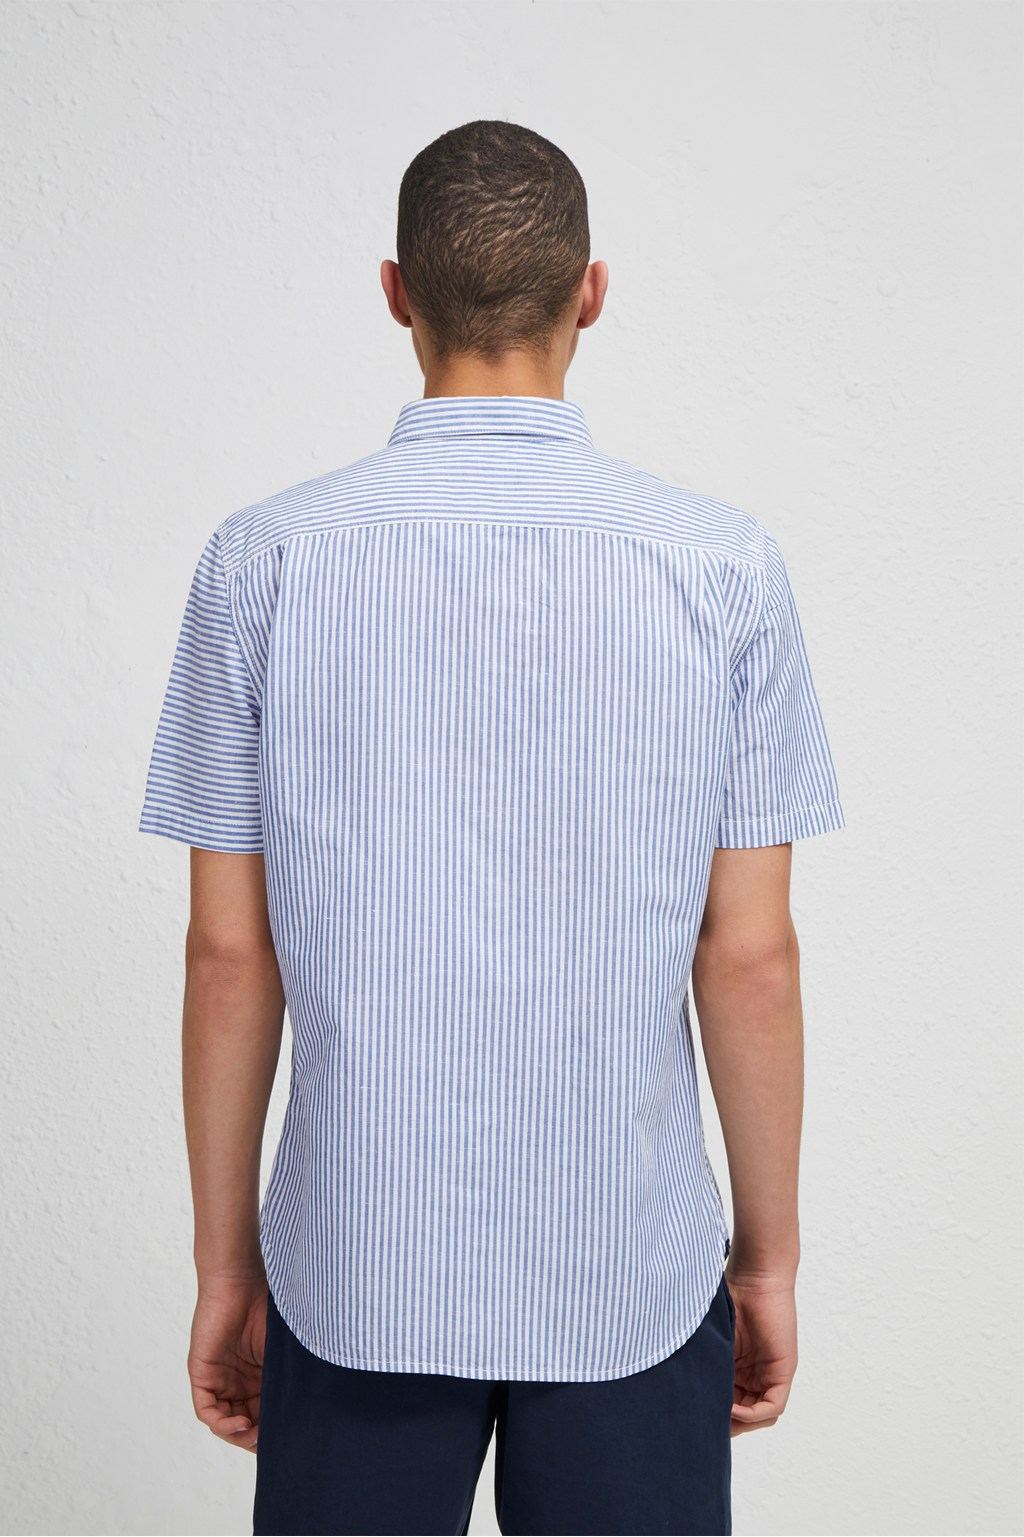 a7792aeeac Cotton Linen Chambray Stripe Shirt | Work Clothes | French ...